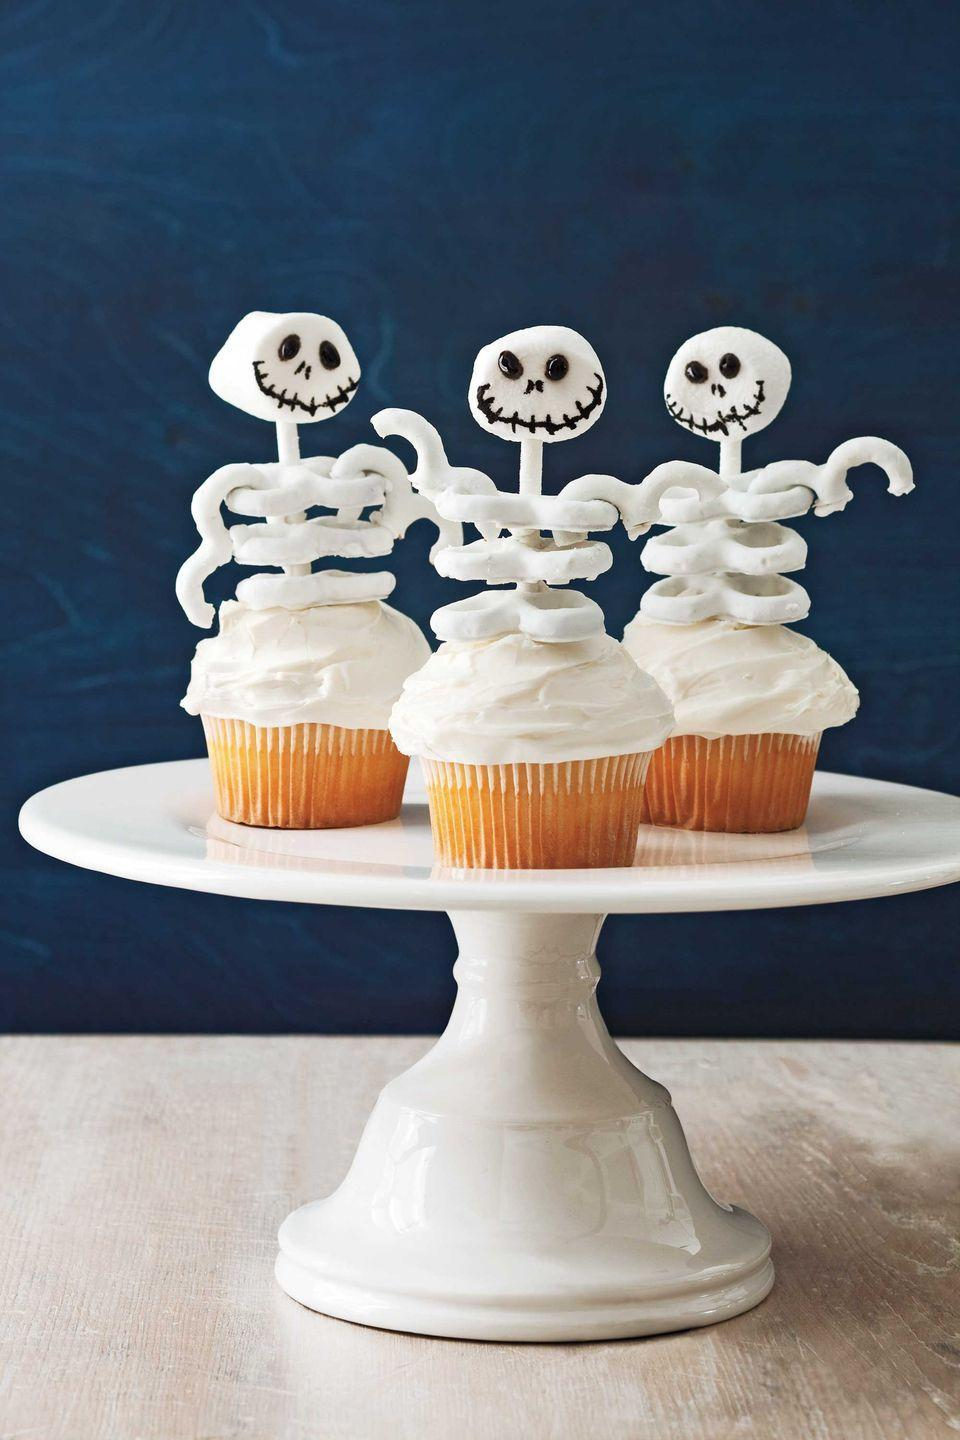 """<p>Who could resist a cute cupcake with a skeletal frame comprised of a marshmallow skull and yogurt mini pretzel ribs? Whip up a batch of these bony characters with your favorite cake mix and canned frosting.</p><p><a href=""""https://www.womansday.com/food-recipes/food-drinks/recipes/a11450/skeleton-cupcakes-recipe-122708/"""" rel=""""nofollow noopener"""" target=""""_blank"""" data-ylk=""""slk:Get the Skeleton Frame Cupcakes recipe."""" class=""""link rapid-noclick-resp""""><em>Get the Skeleton Frame Cupcakes recipe.</em></a></p>"""